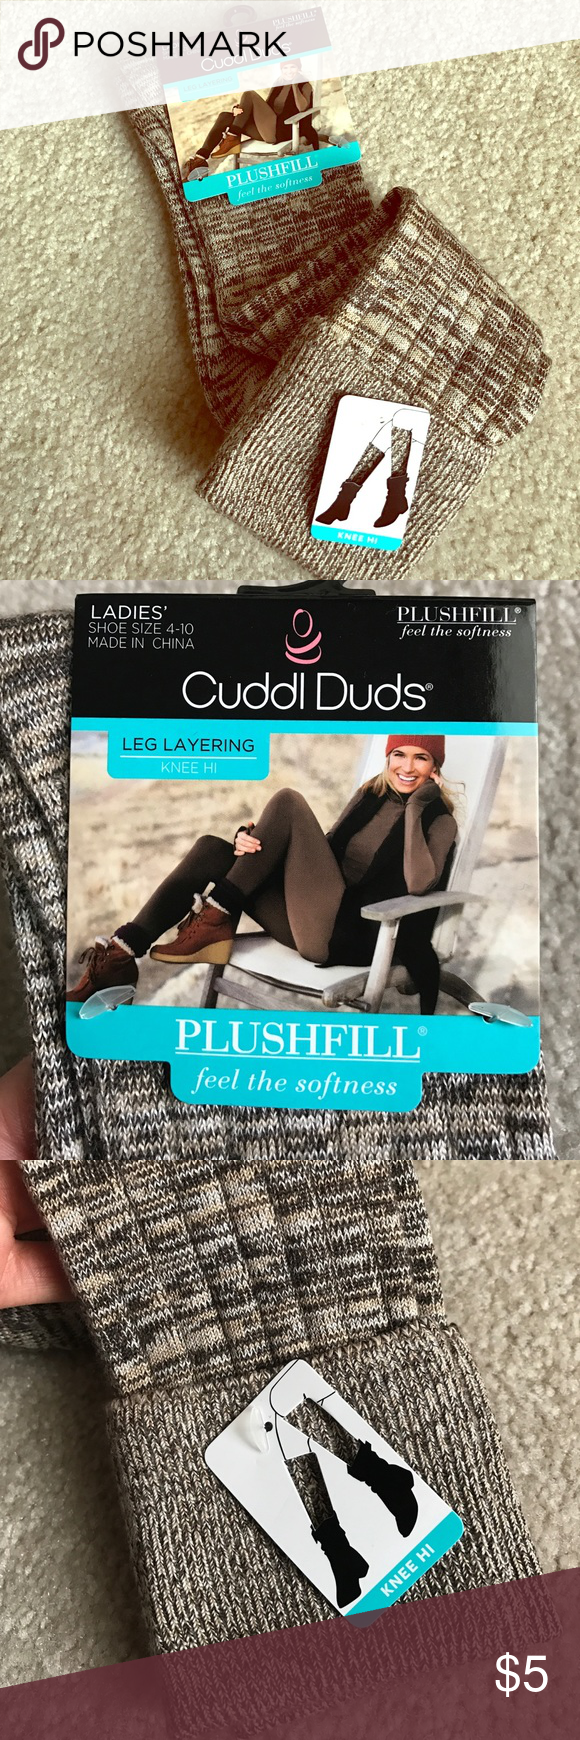 Boot sockS Brown and tans knee high, boot socks, nwt! Shoe sizes 4-10 cuddl duds Accessories Hosiery & Socks